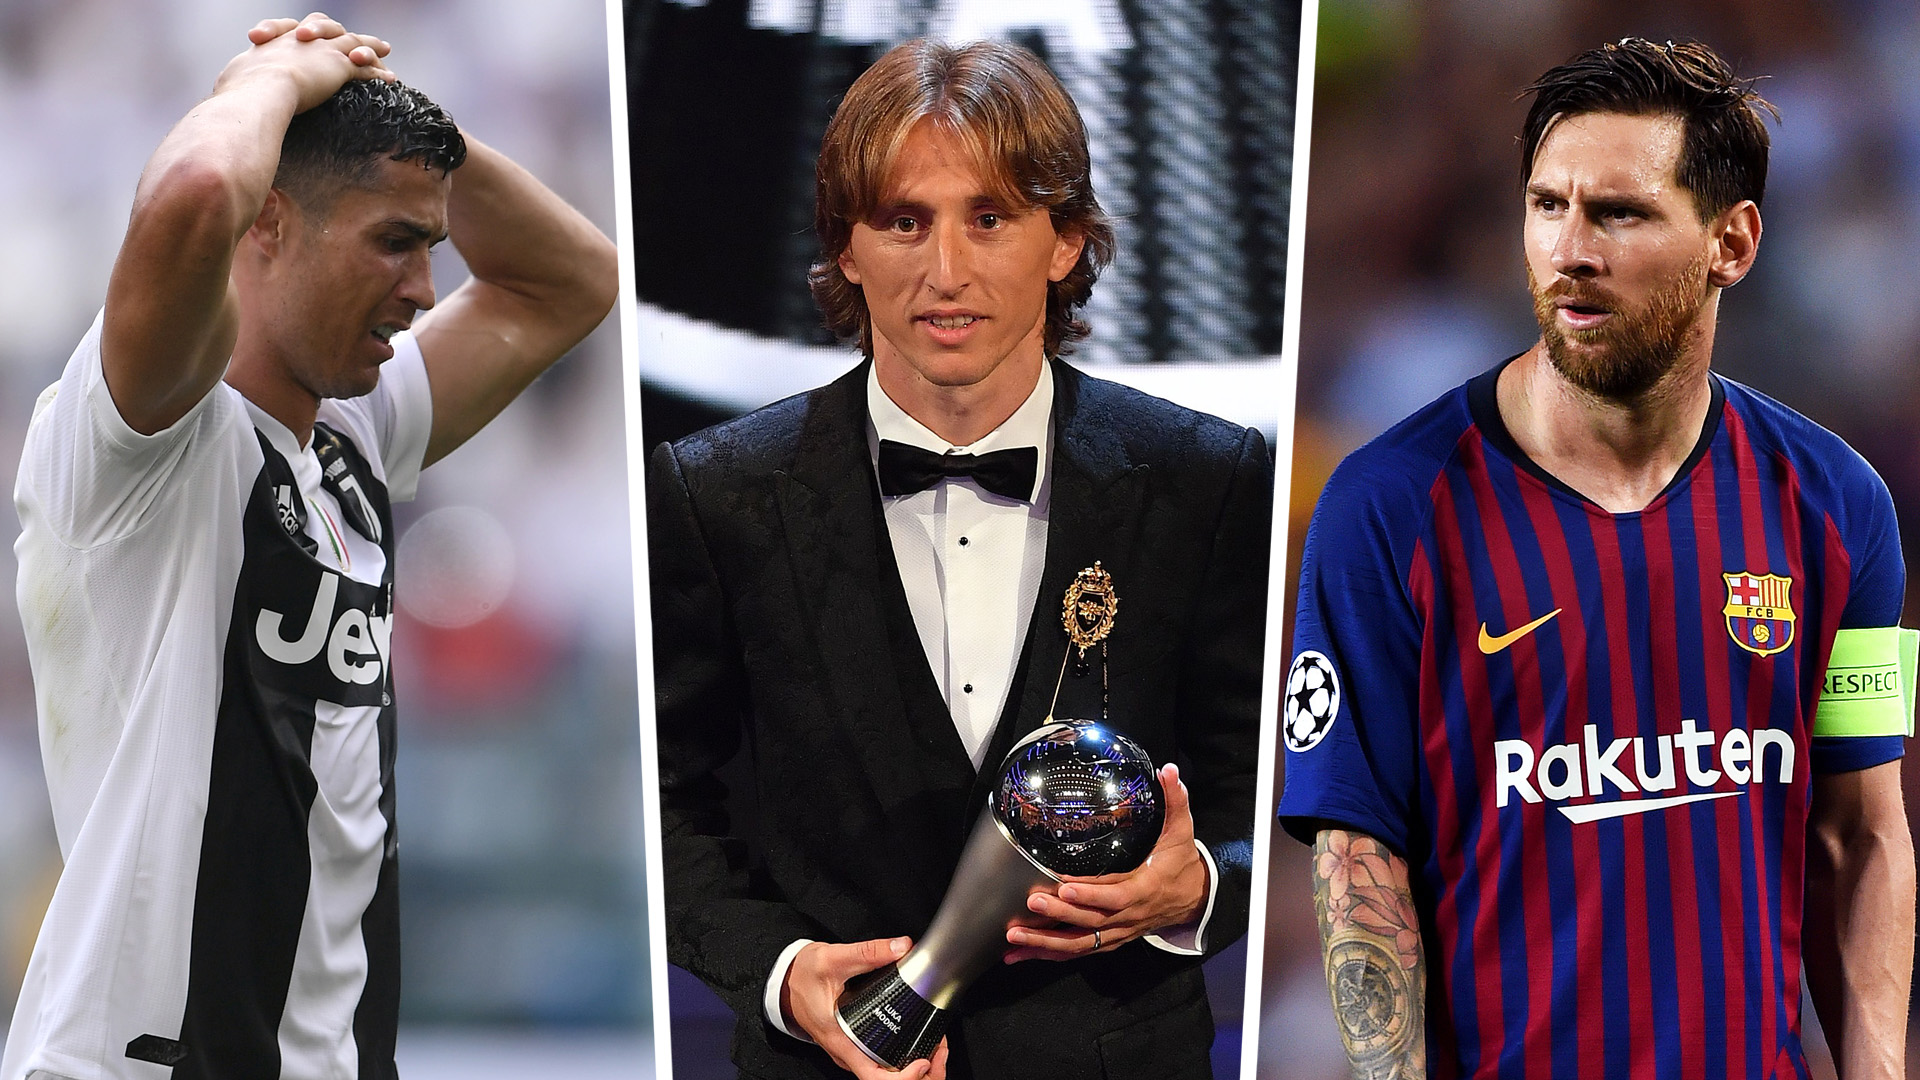 Lionel Messi Luka Modric Cristiano Ronaldo The Best Split